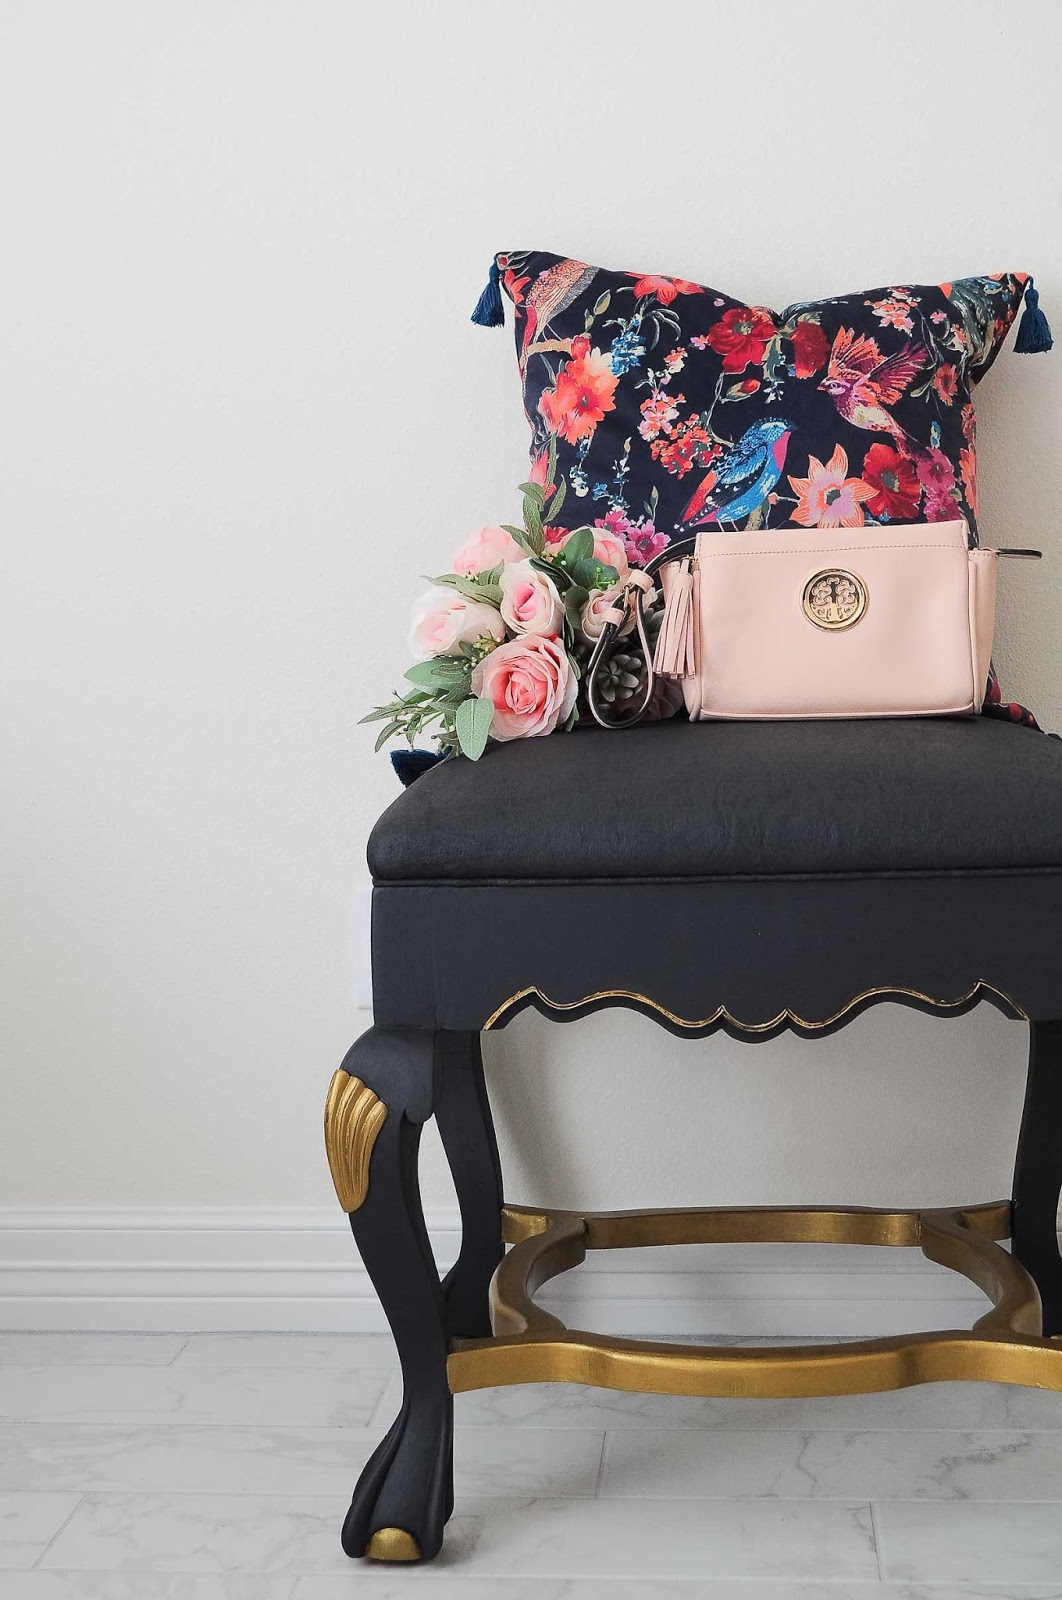 A thrifted ottoman gets up cycled with black paint and gold finishes. Even the fabric is painted- what a gorgeous DIY makeover. | #DIY #decor #painting #paintedfurniture #furnituremakeover #upcycled #thriftscore #antiques #ottoman #glamdecor #tutorial #bedroomideas